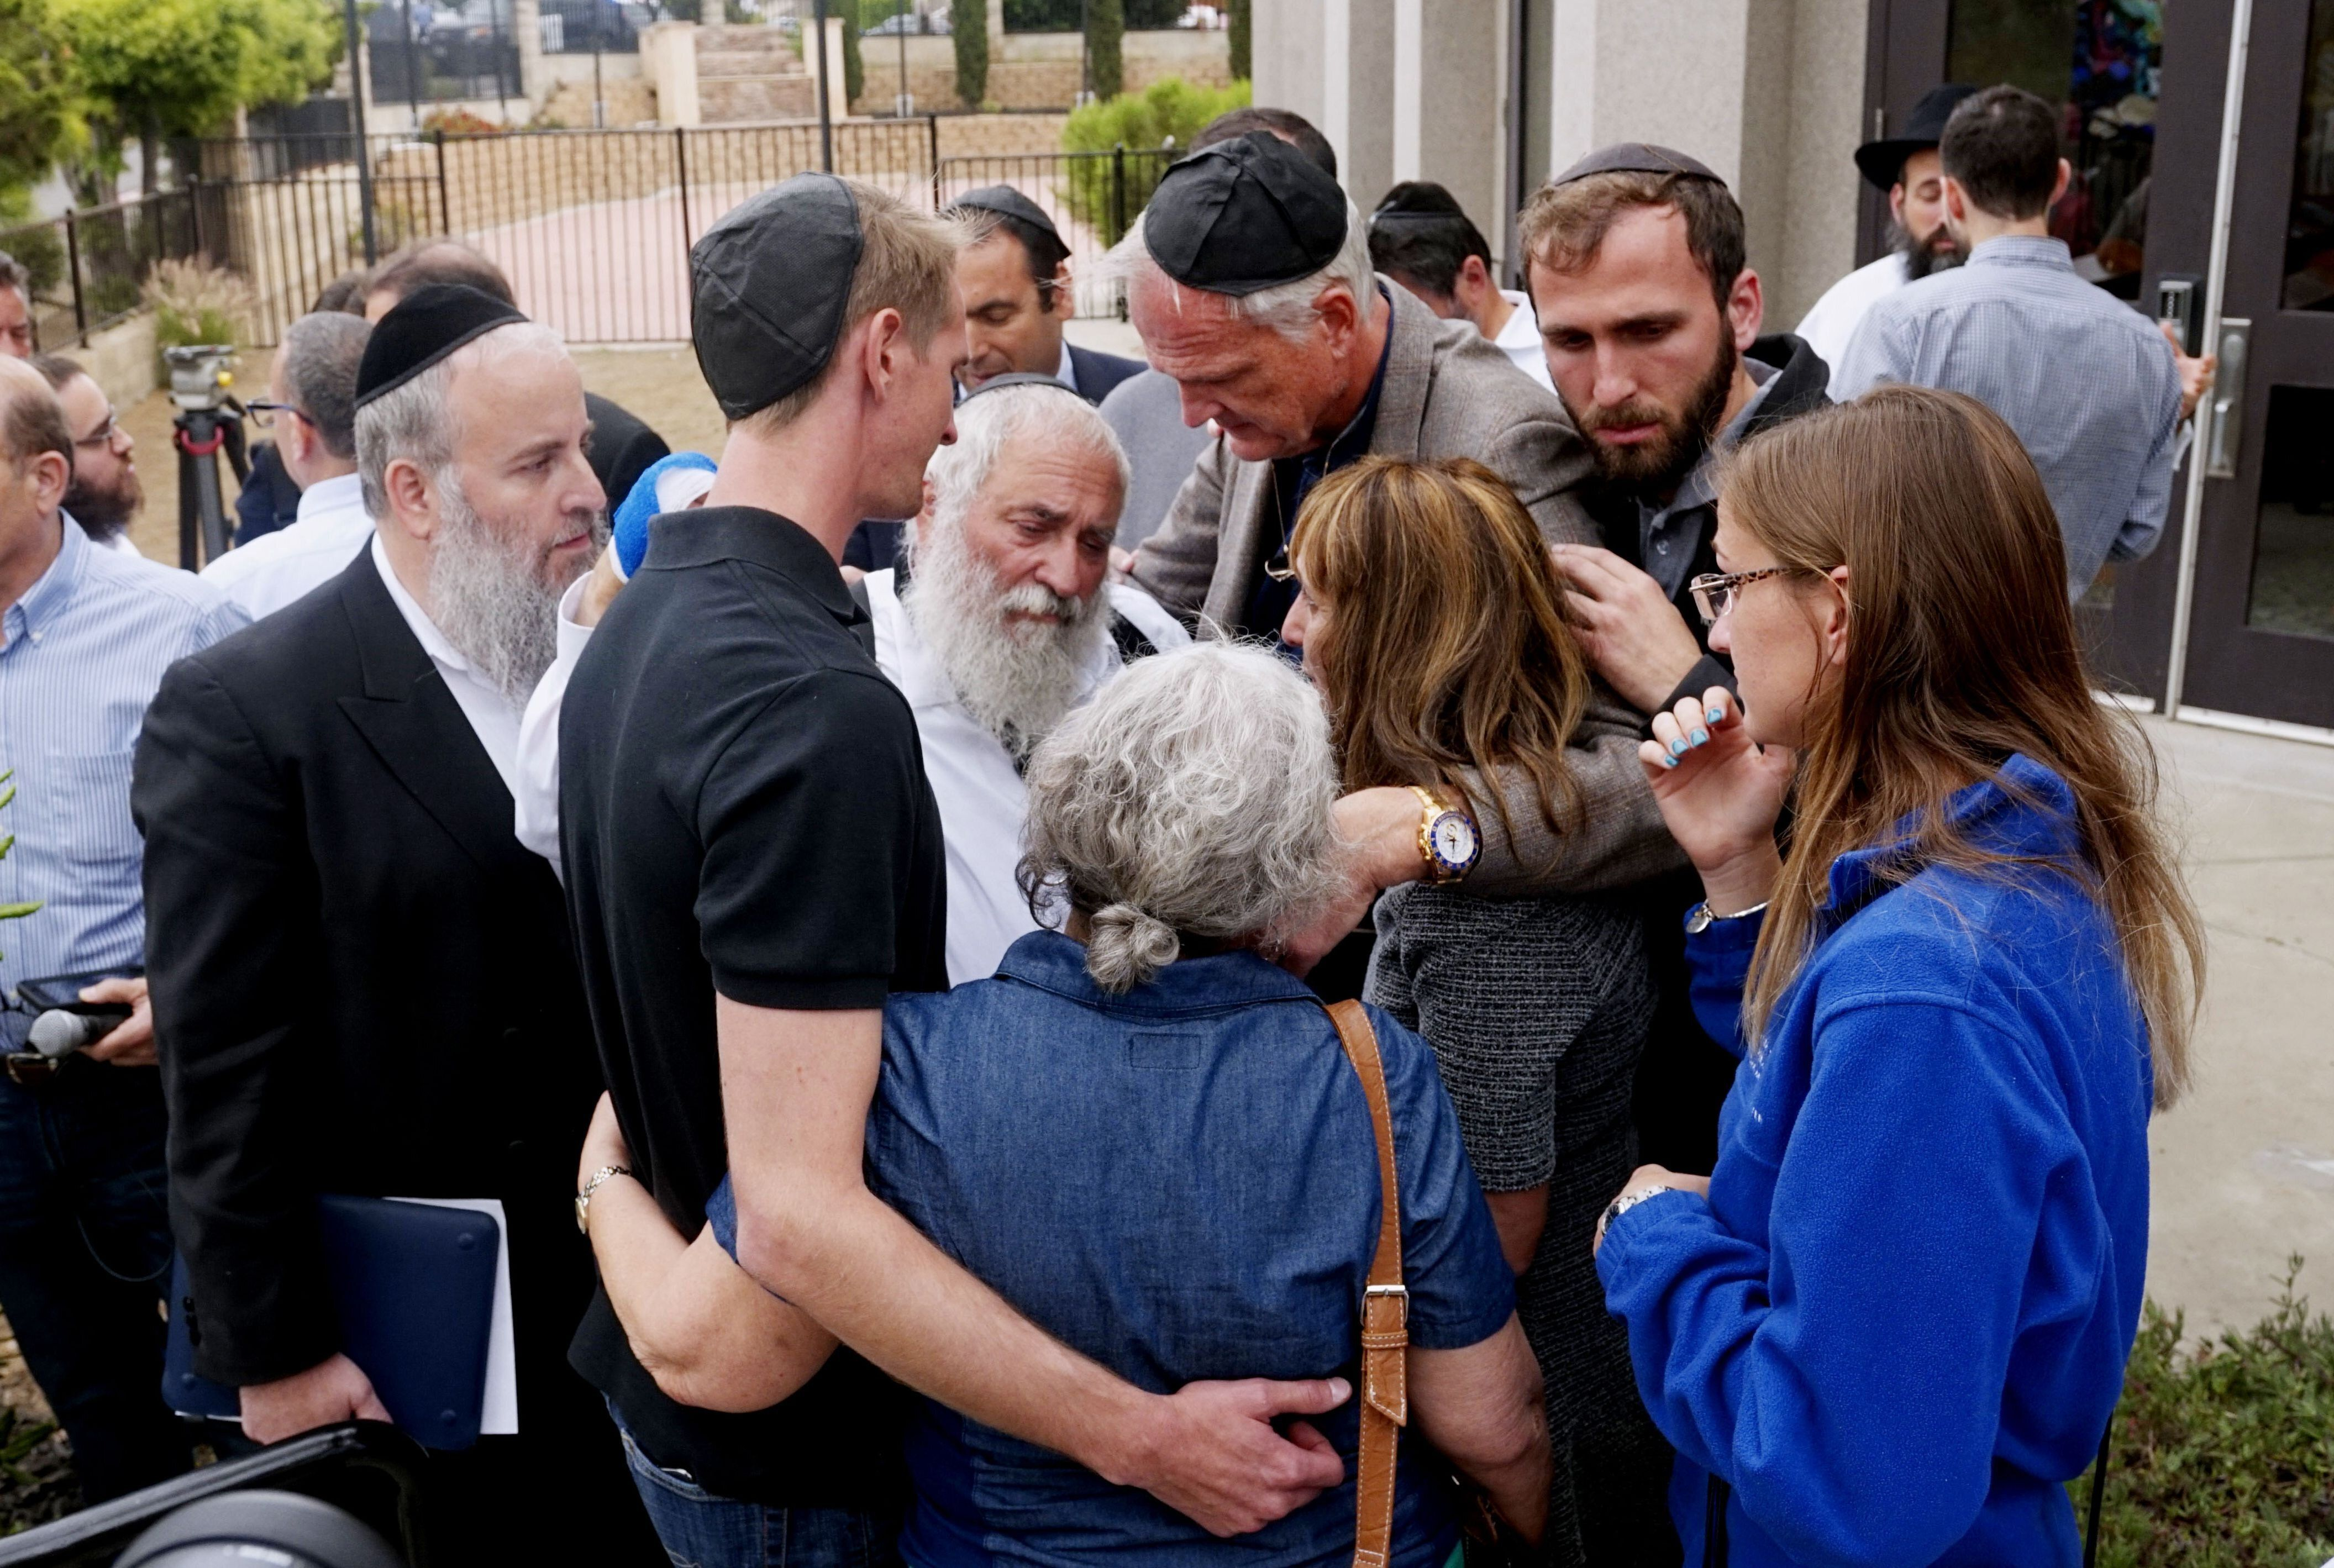 Rabbi Yisroel Goldstein (center) hugs his congregants after a press conference outside the Chabad of Poway Synagogue on April